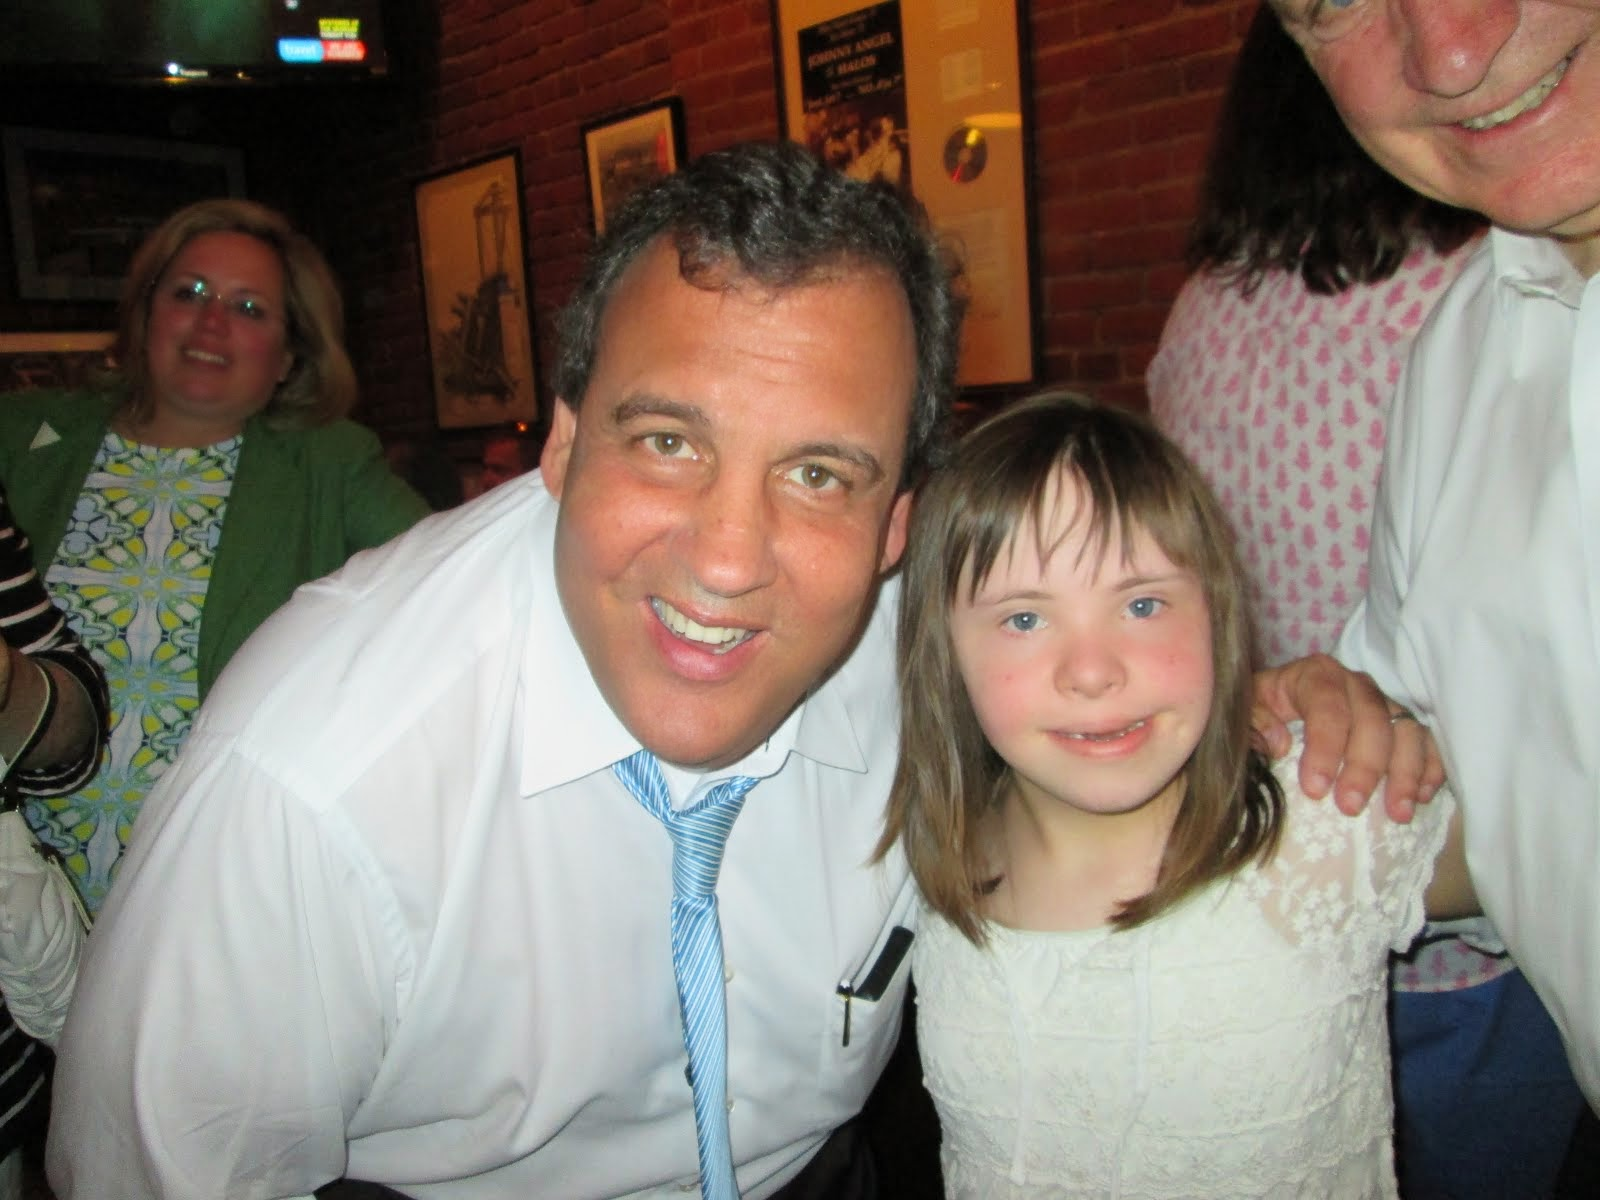 Chloe meets NJ Governor Christie